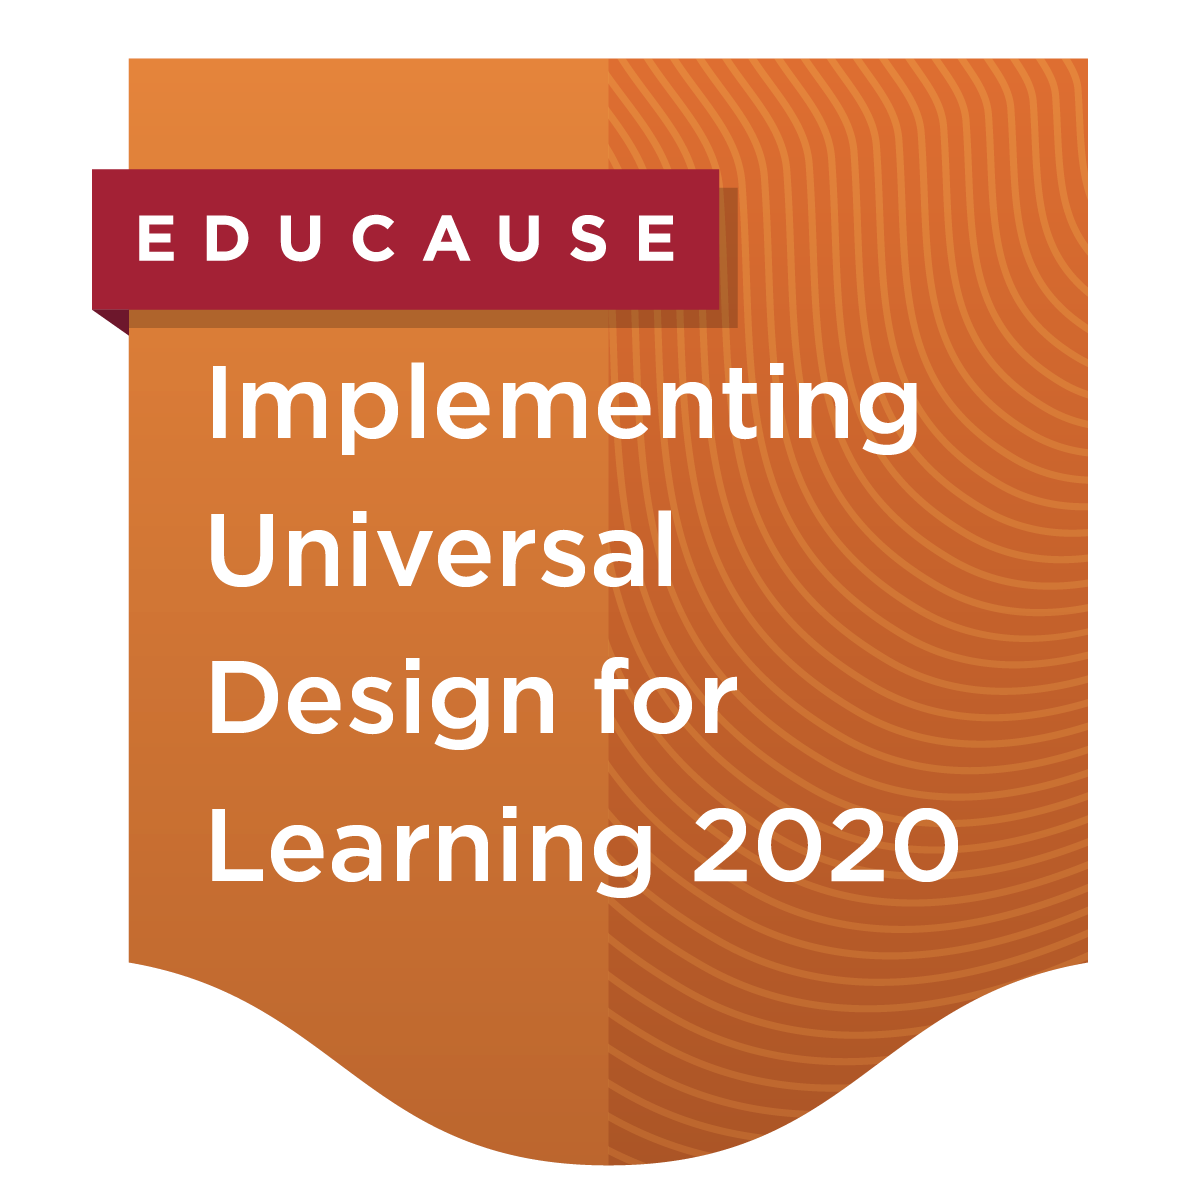 Implementing Universal Design for Learning in Higher Education 2020